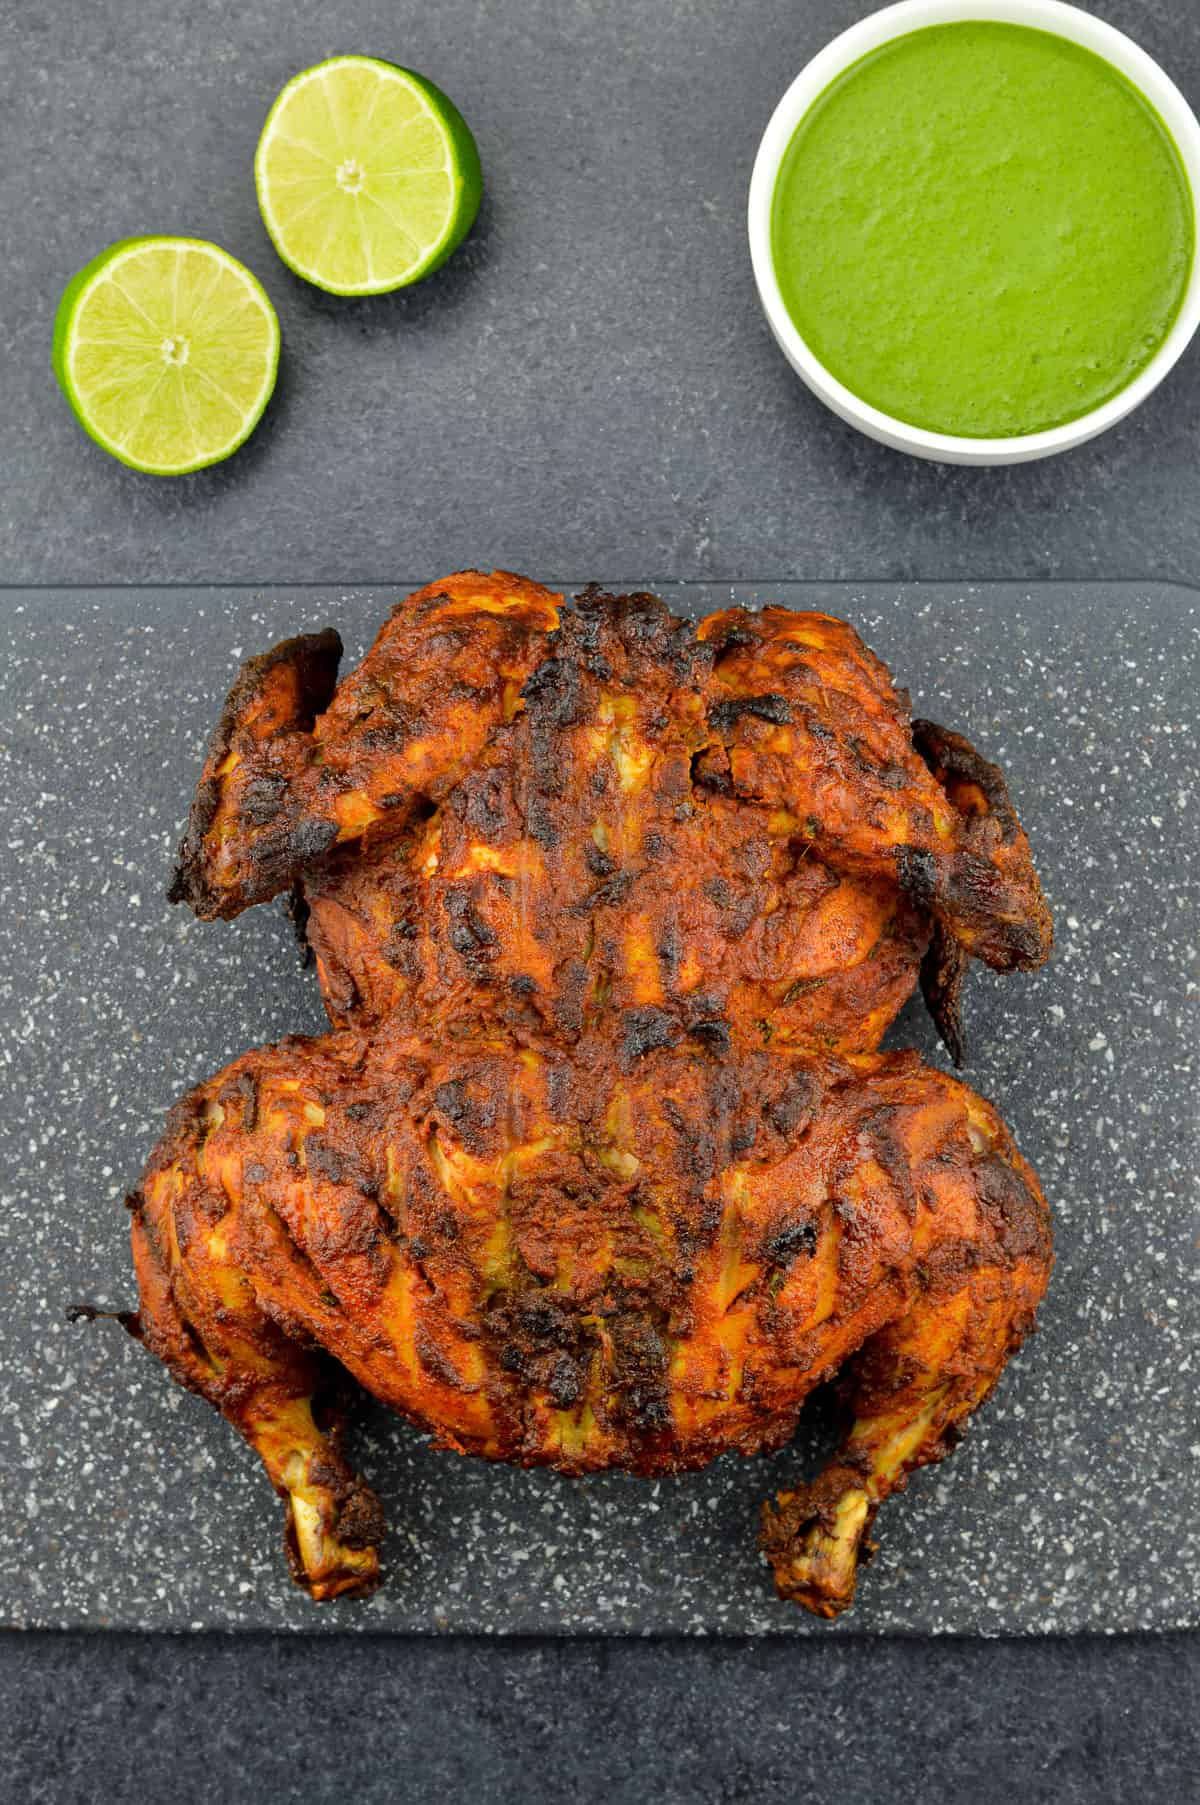 a whole chicken tandoori placed on a black cutting board, with a bowl of green chutney and a couple of lemon wedges on the side